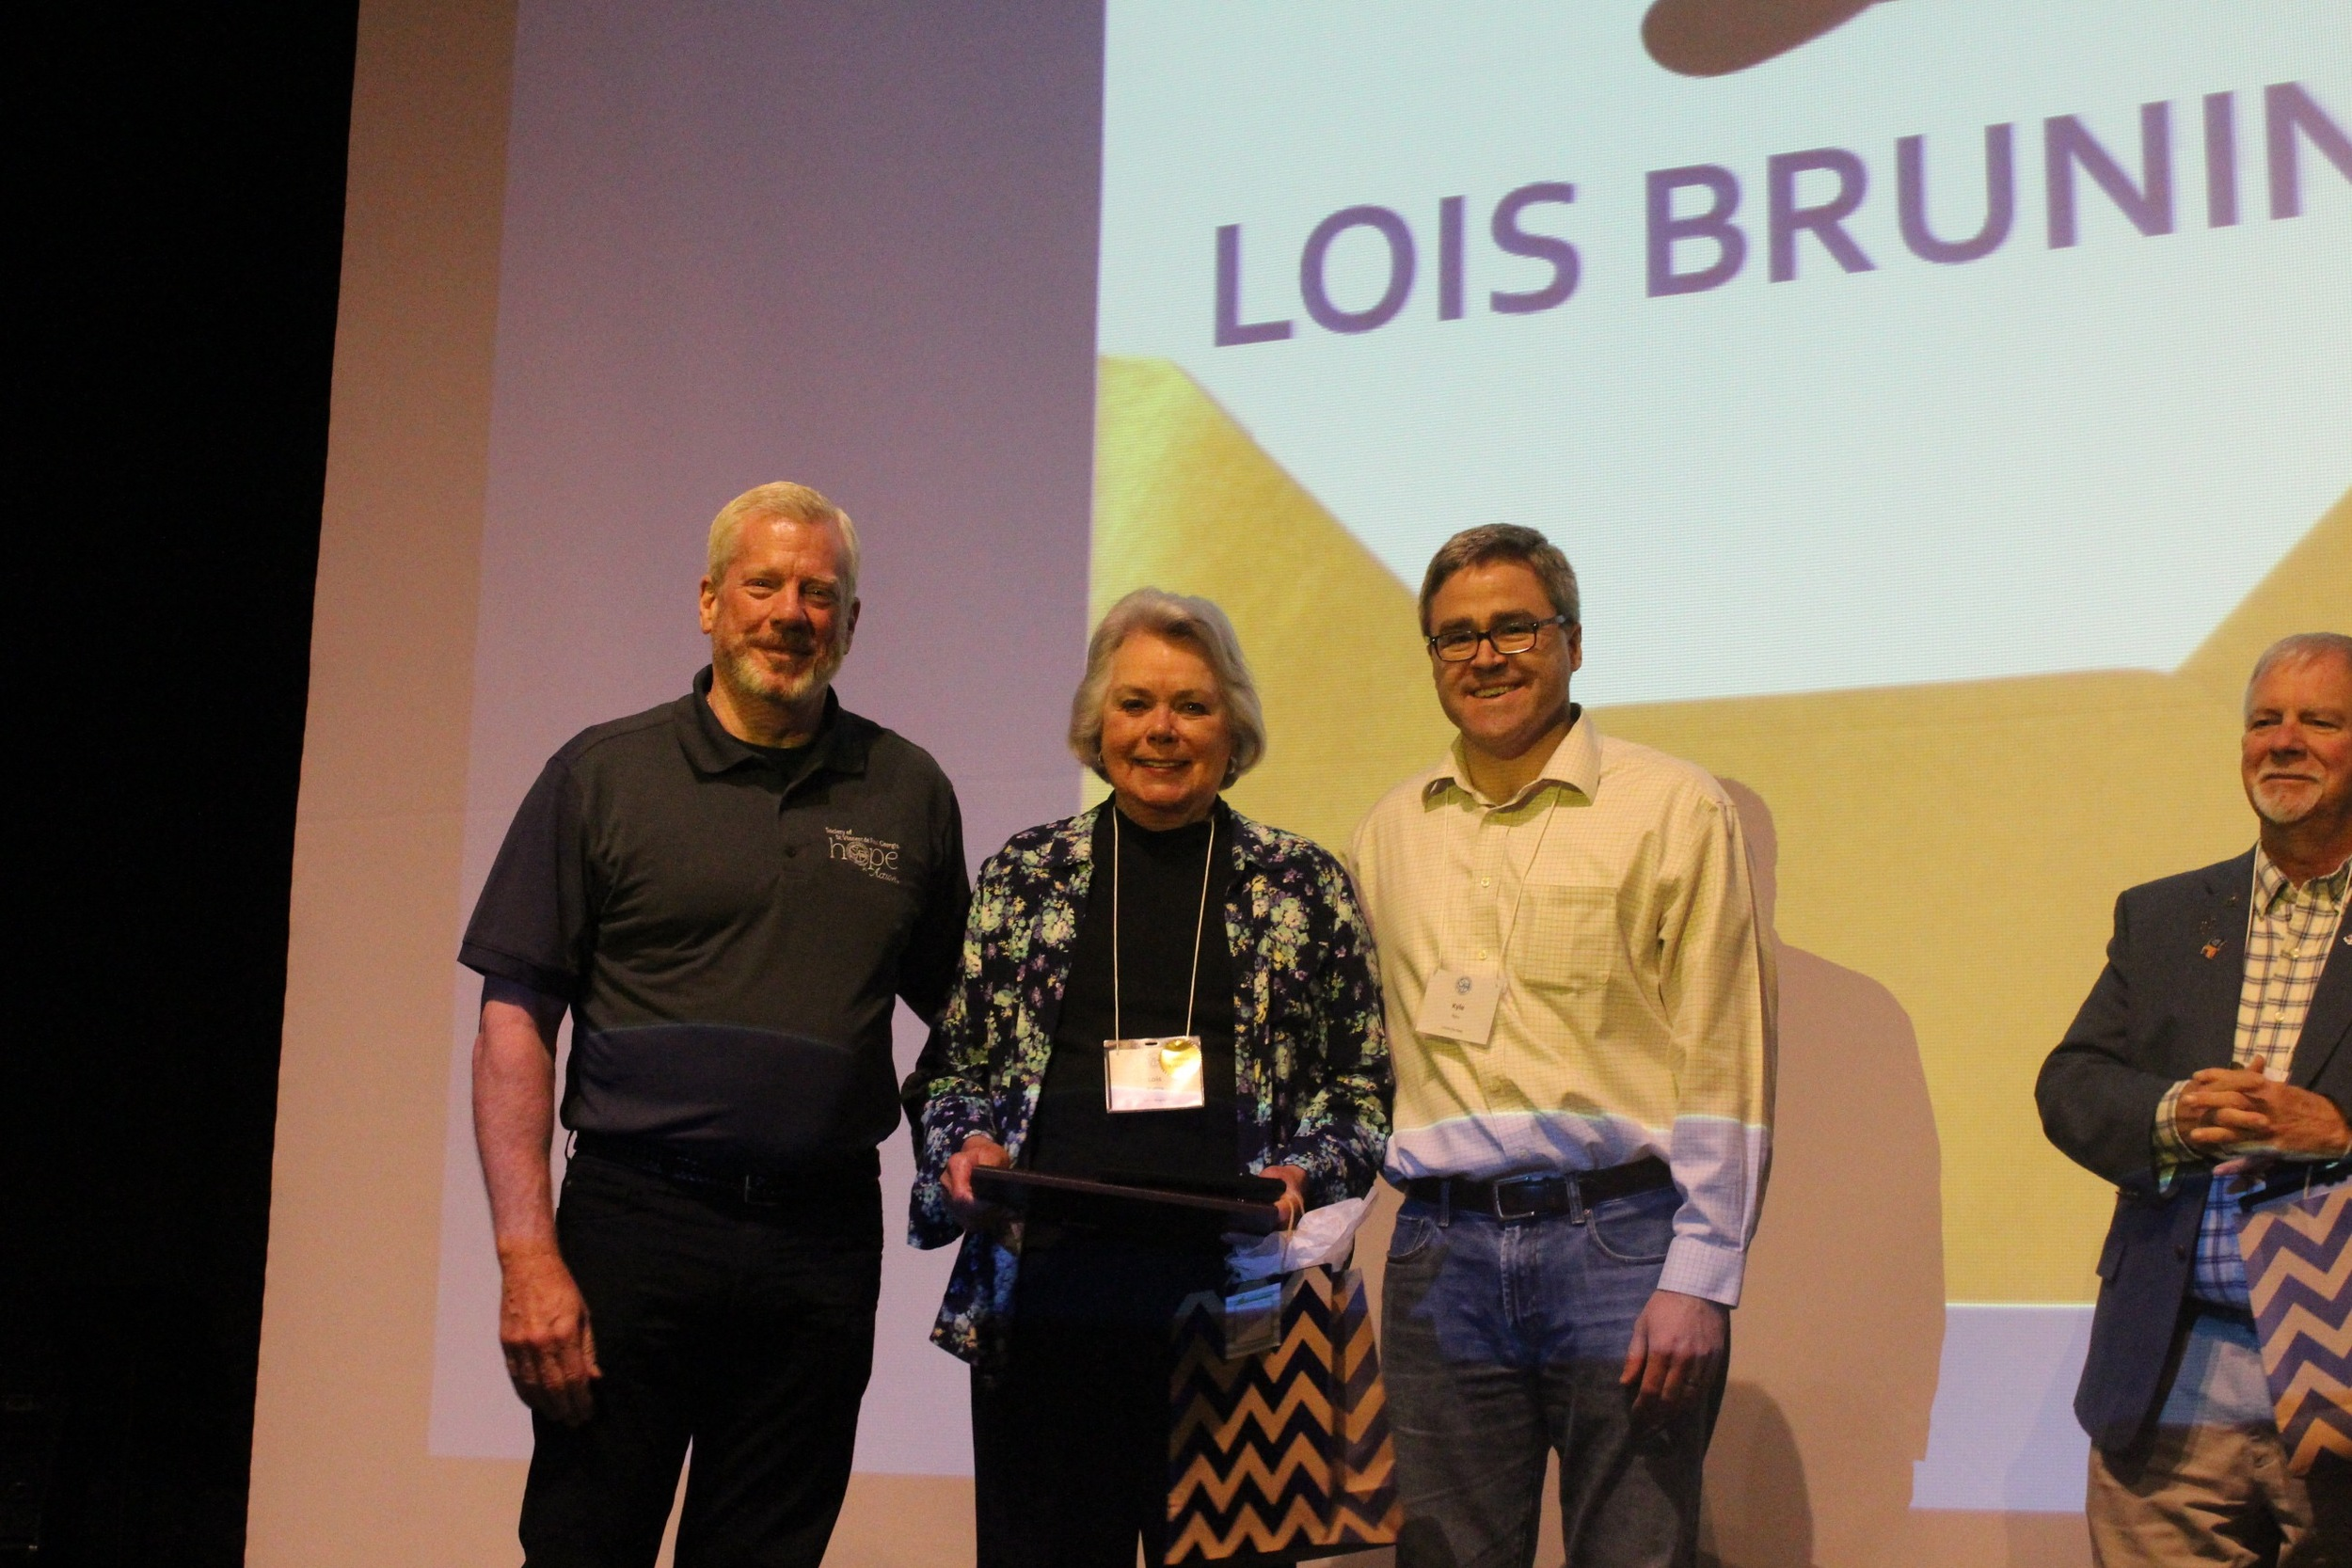 The 2016 Top Hat Award Winner is Lois Bruning, St. Mary Magdalene